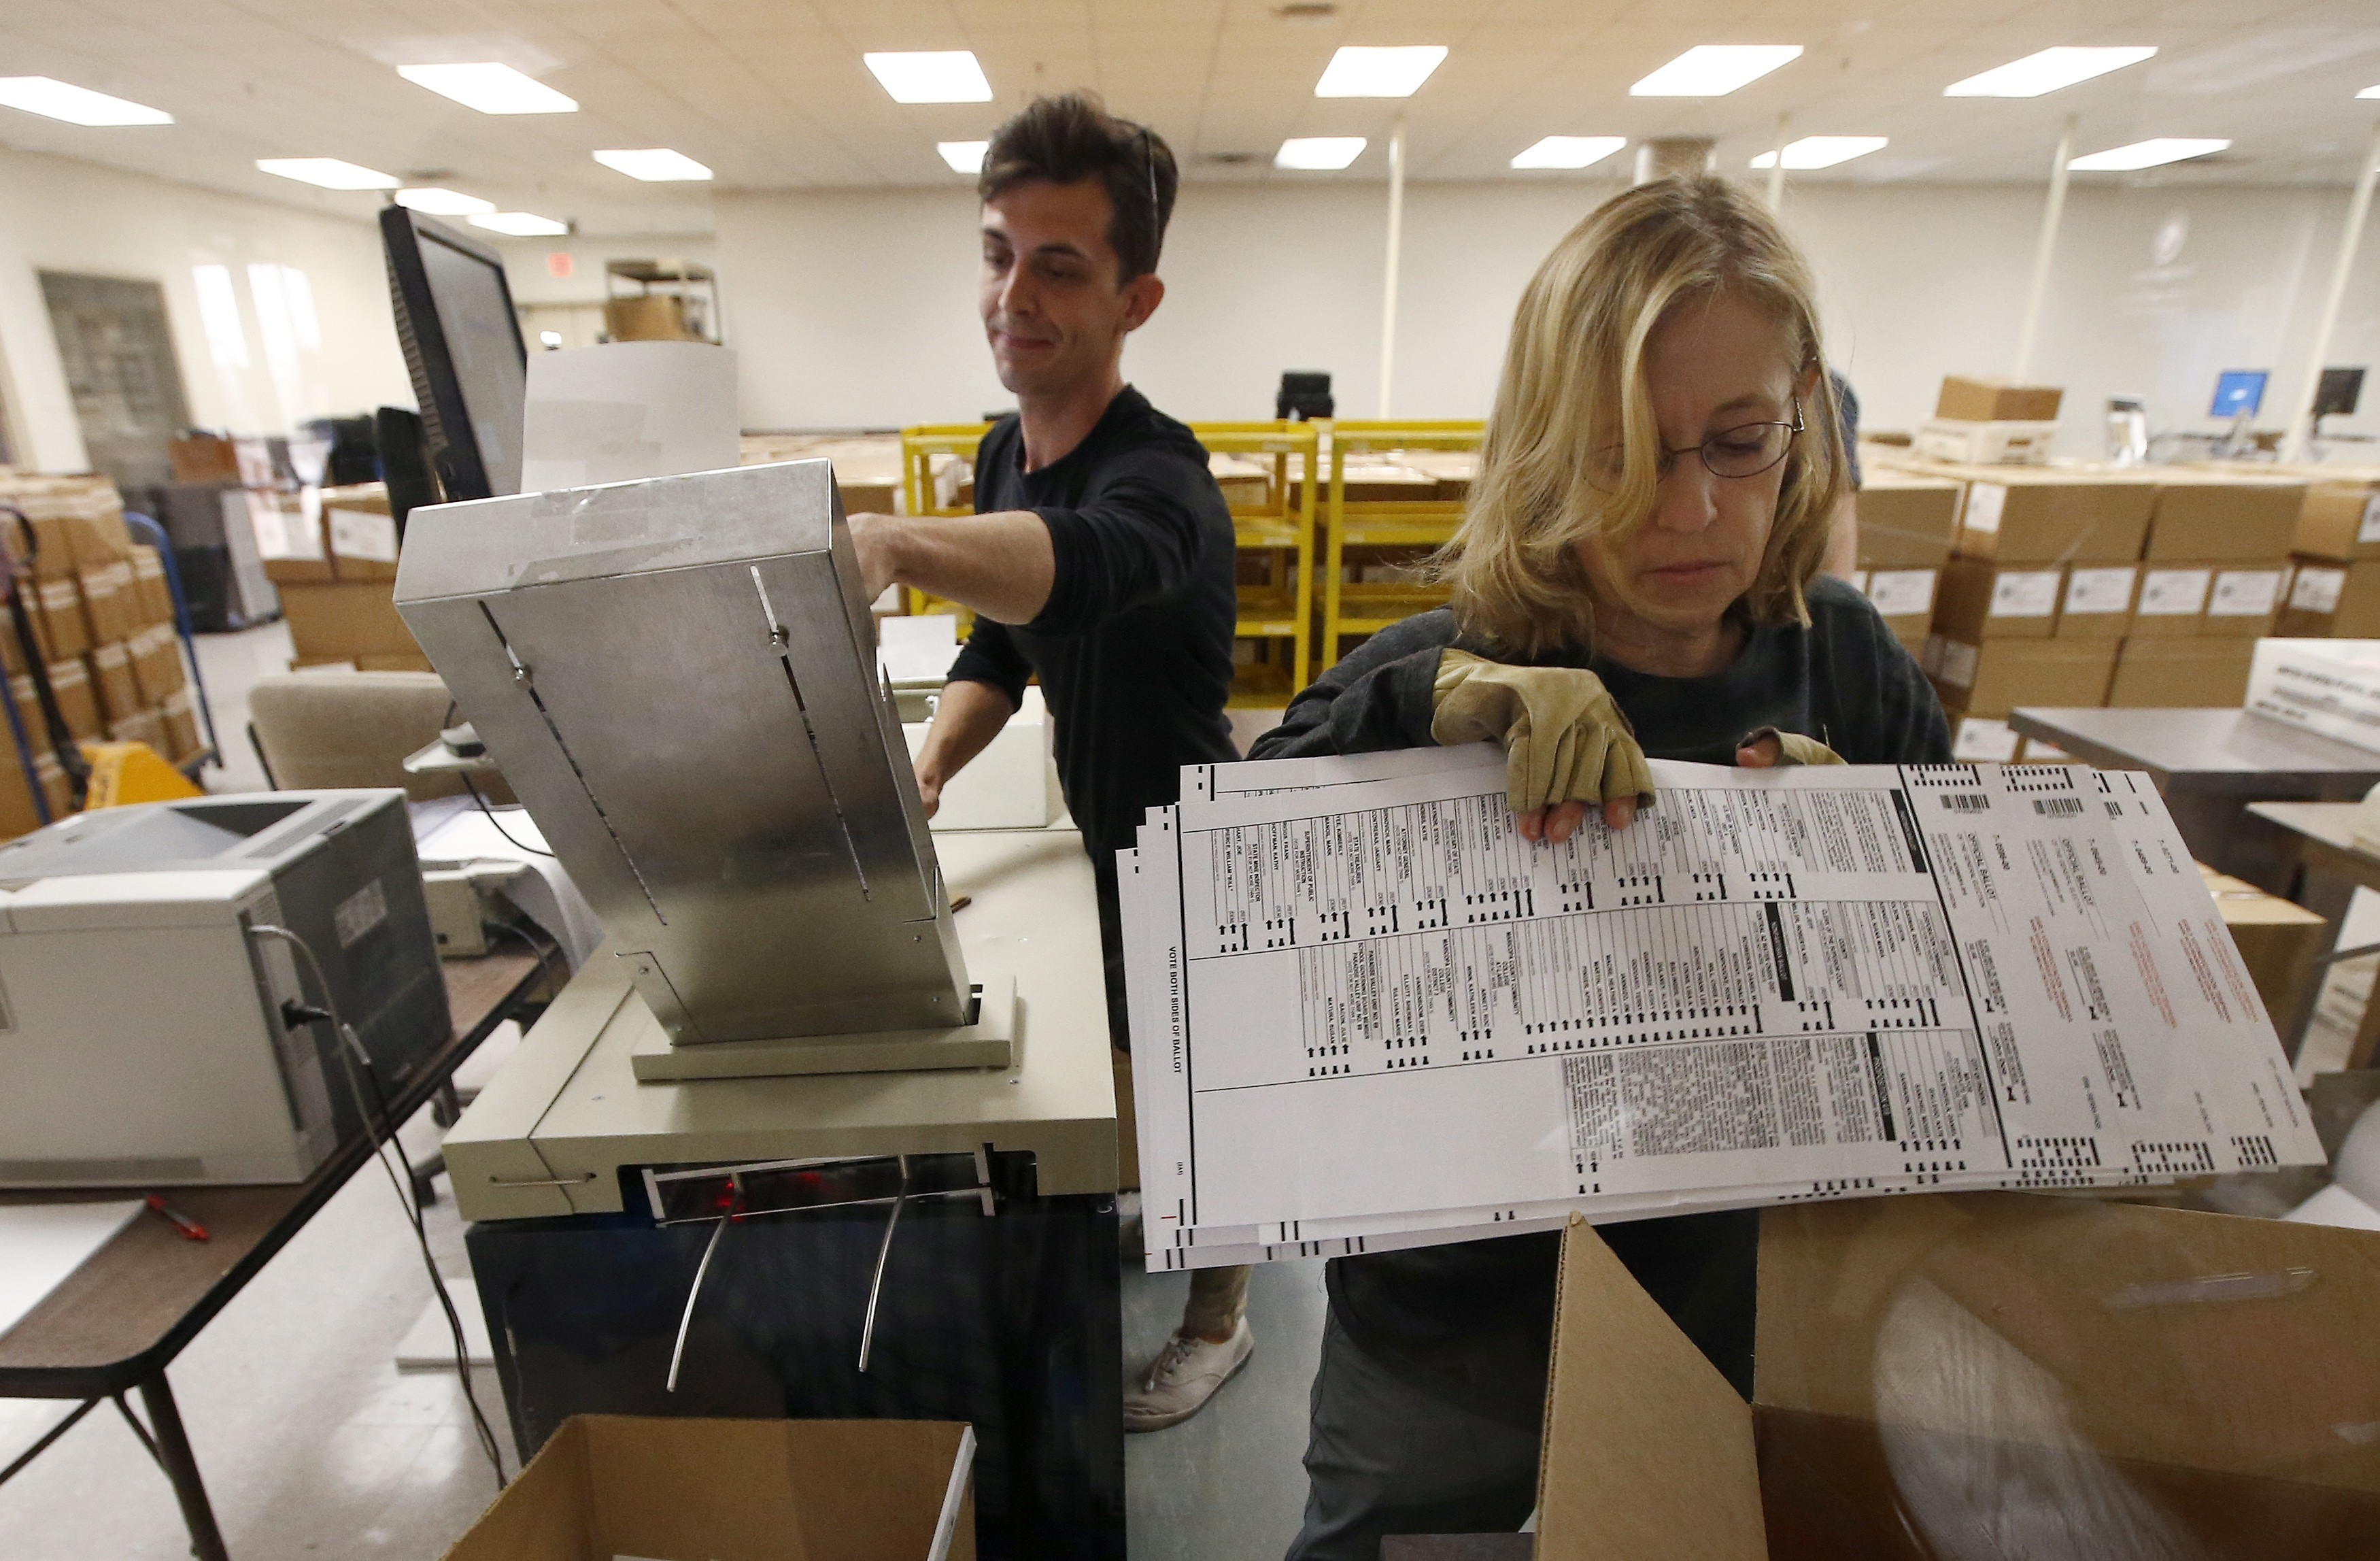 Workers organize ballots at the Maricopa County Recorder's Office Thursday, Nov. 8, 2018, in Phoenix. There are several races too close to call in Arizona, especially the Senate race between Democratic candidate Kyrsten Sinema and Republican candidate Martha McSally. (AP Photo/Ross D. Franklin)